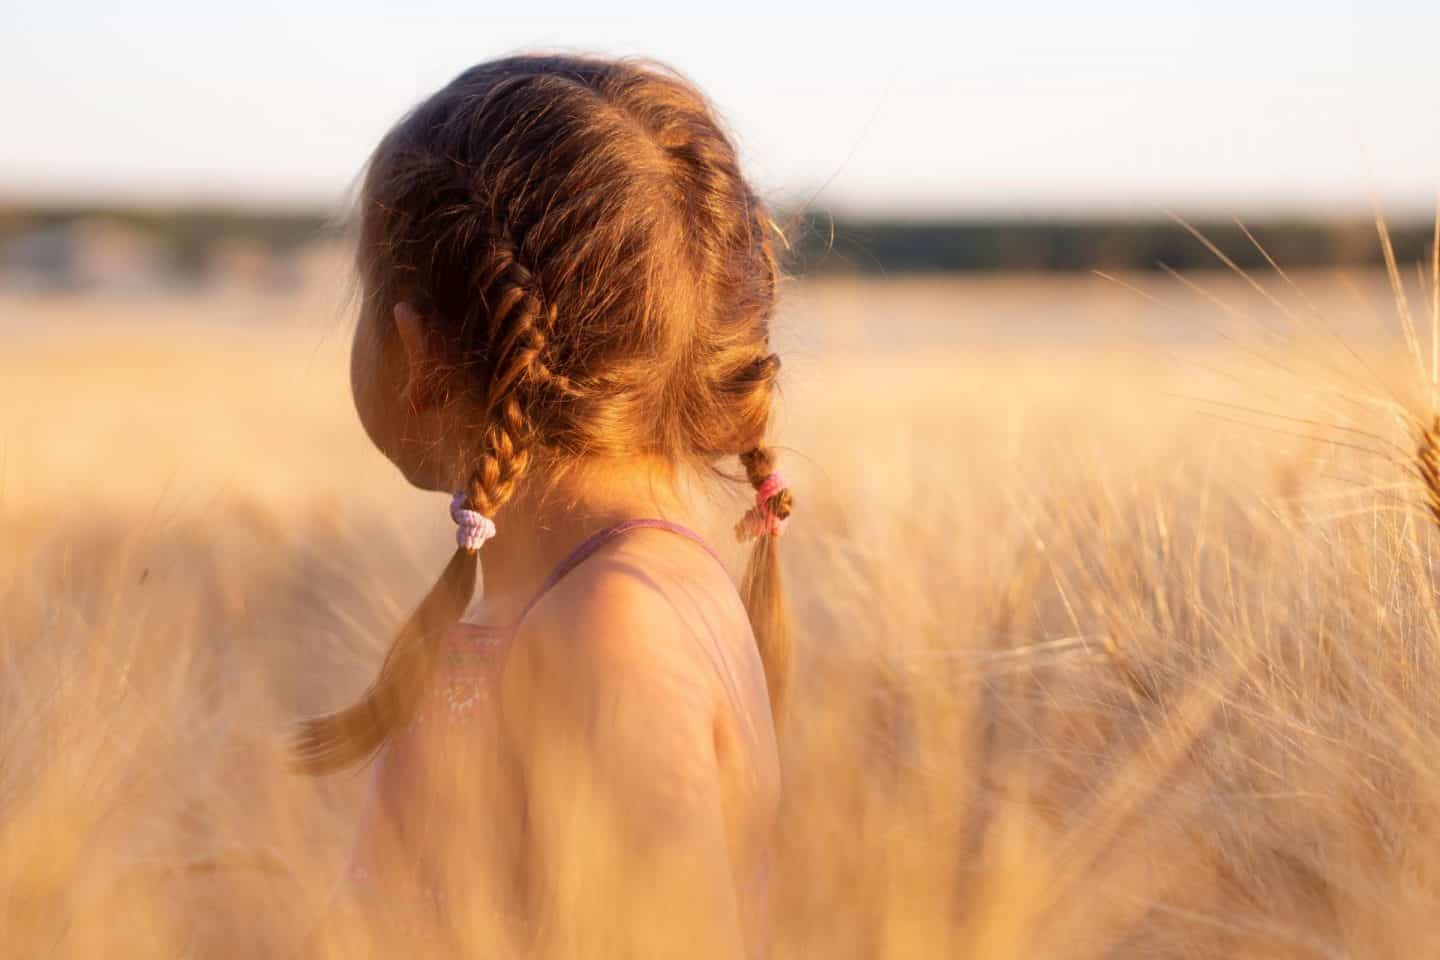 Instill Mindfulness in Your Child